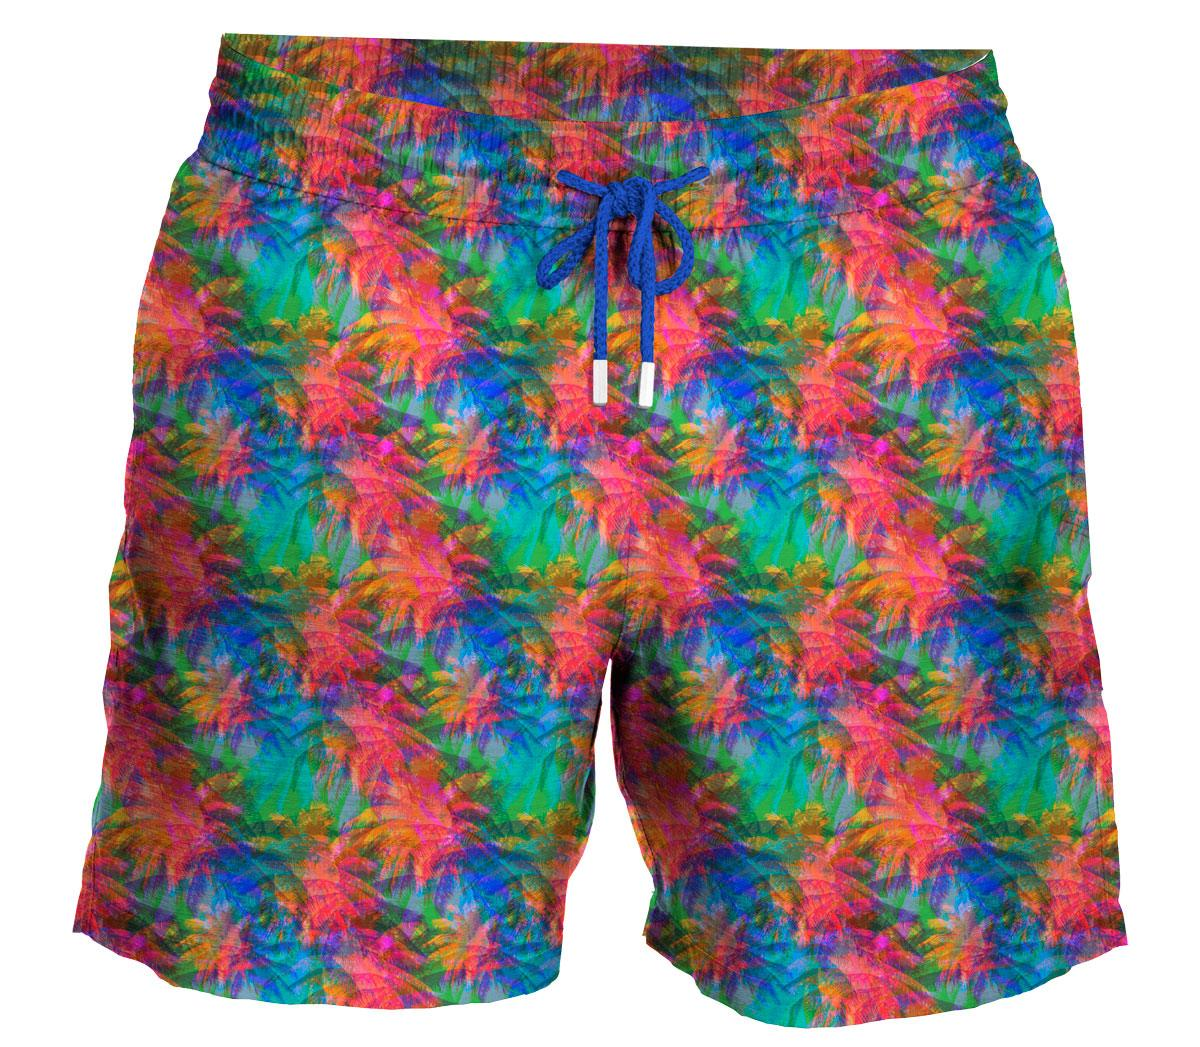 Men's Swim Trunks | Playa